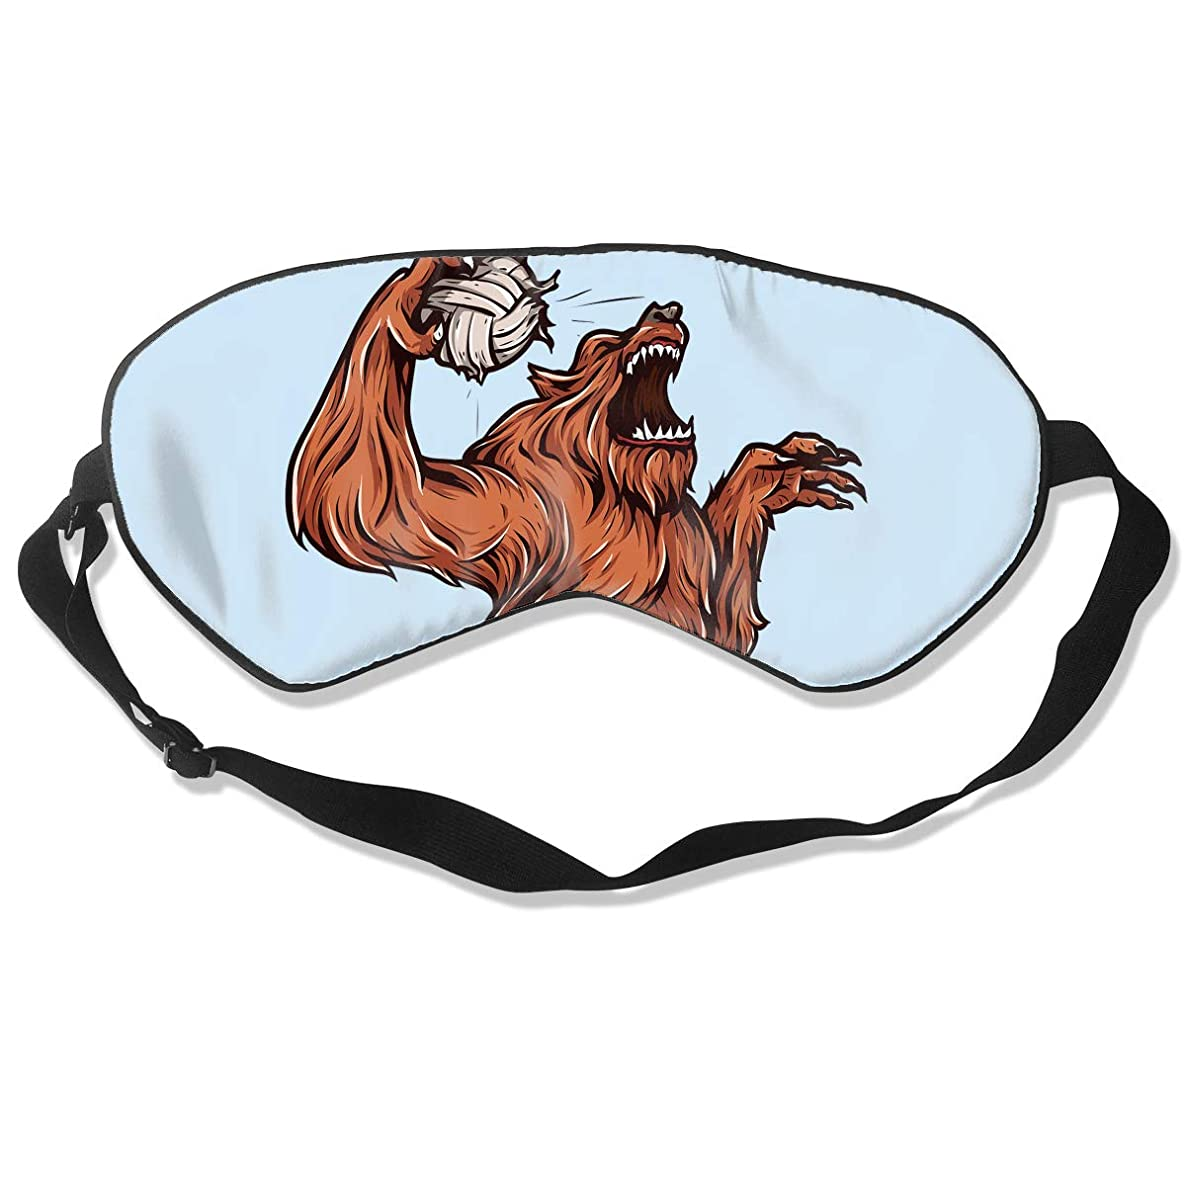 Sleep Mask Volleyball Eye Cover Blackout Eye Masks,Breathable Blindfold